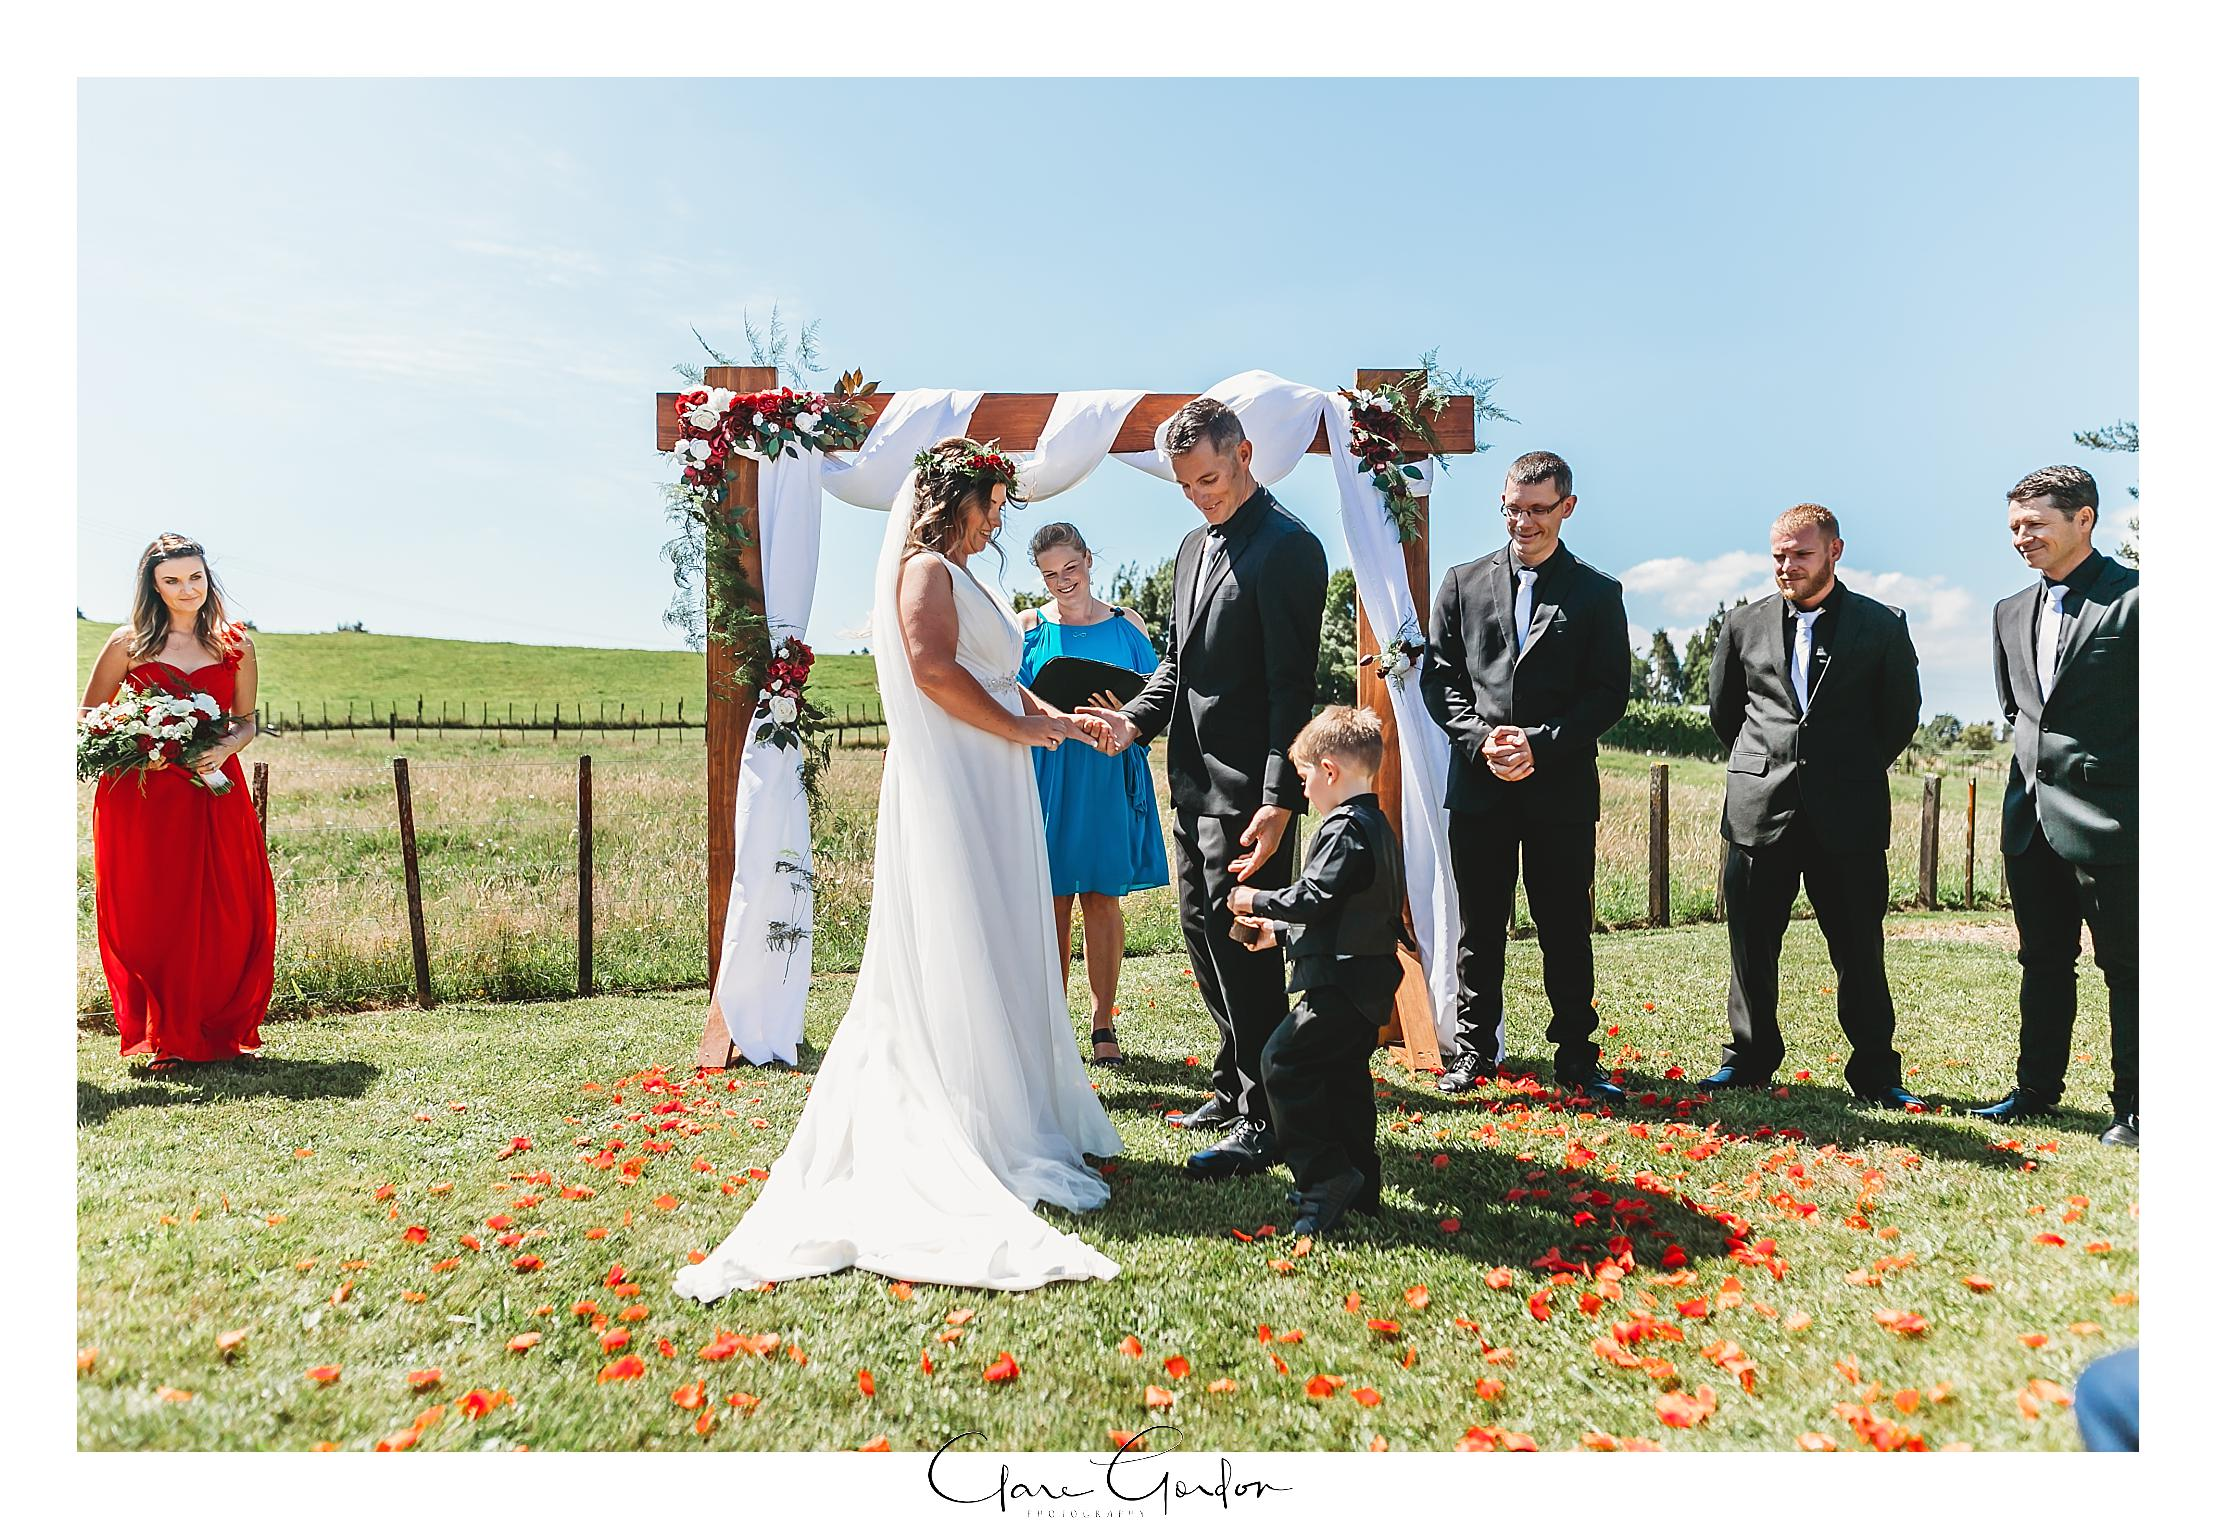 Tauranga-bay-of-plenty-Wedding-Forest-wedding (31).jpg